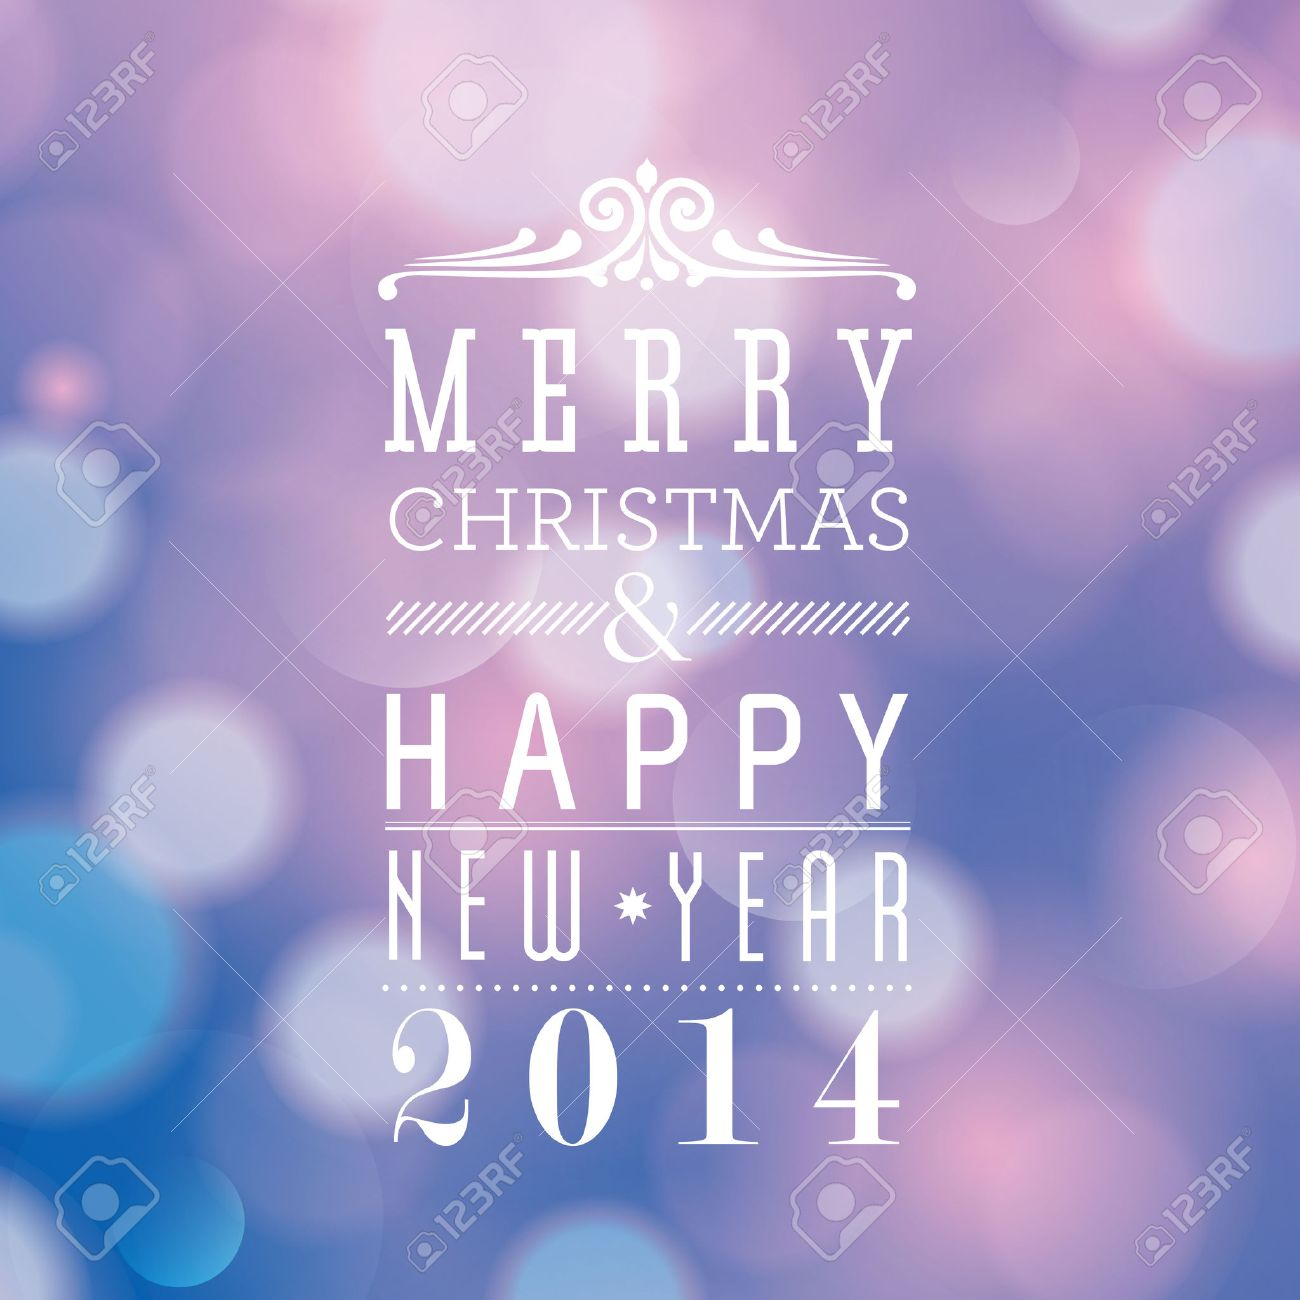 Merry Christmas and Happy New Year card design Stock Vector - 22244490